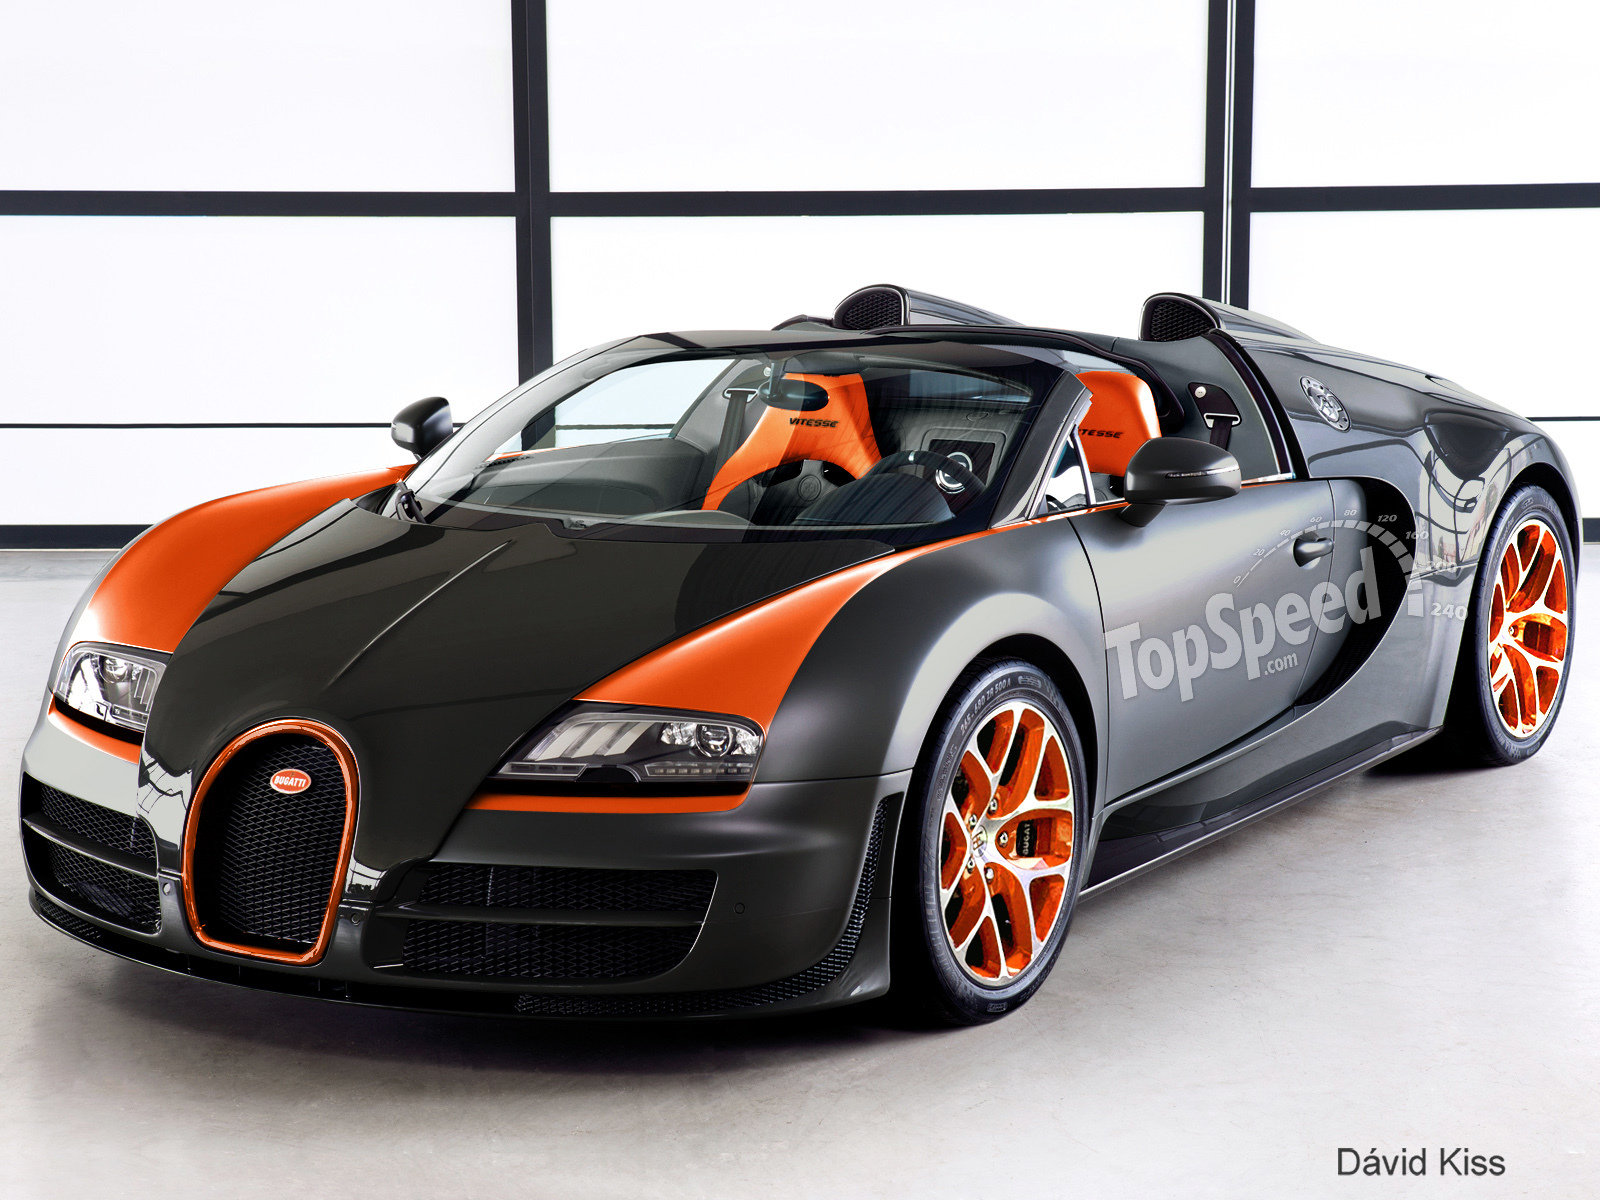 2013 bugatti veyron vitesse wrc limited edition picture 501633 car review. Black Bedroom Furniture Sets. Home Design Ideas